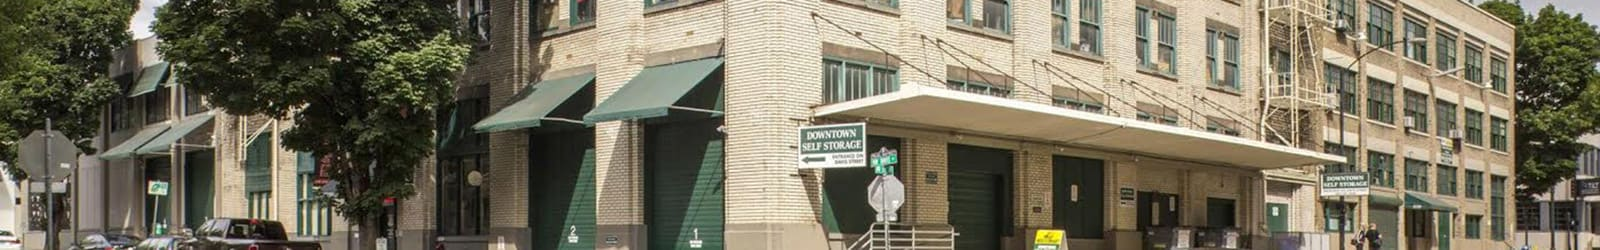 Visit Downtown Self Storage for the best self storage solutions in Vancouver.